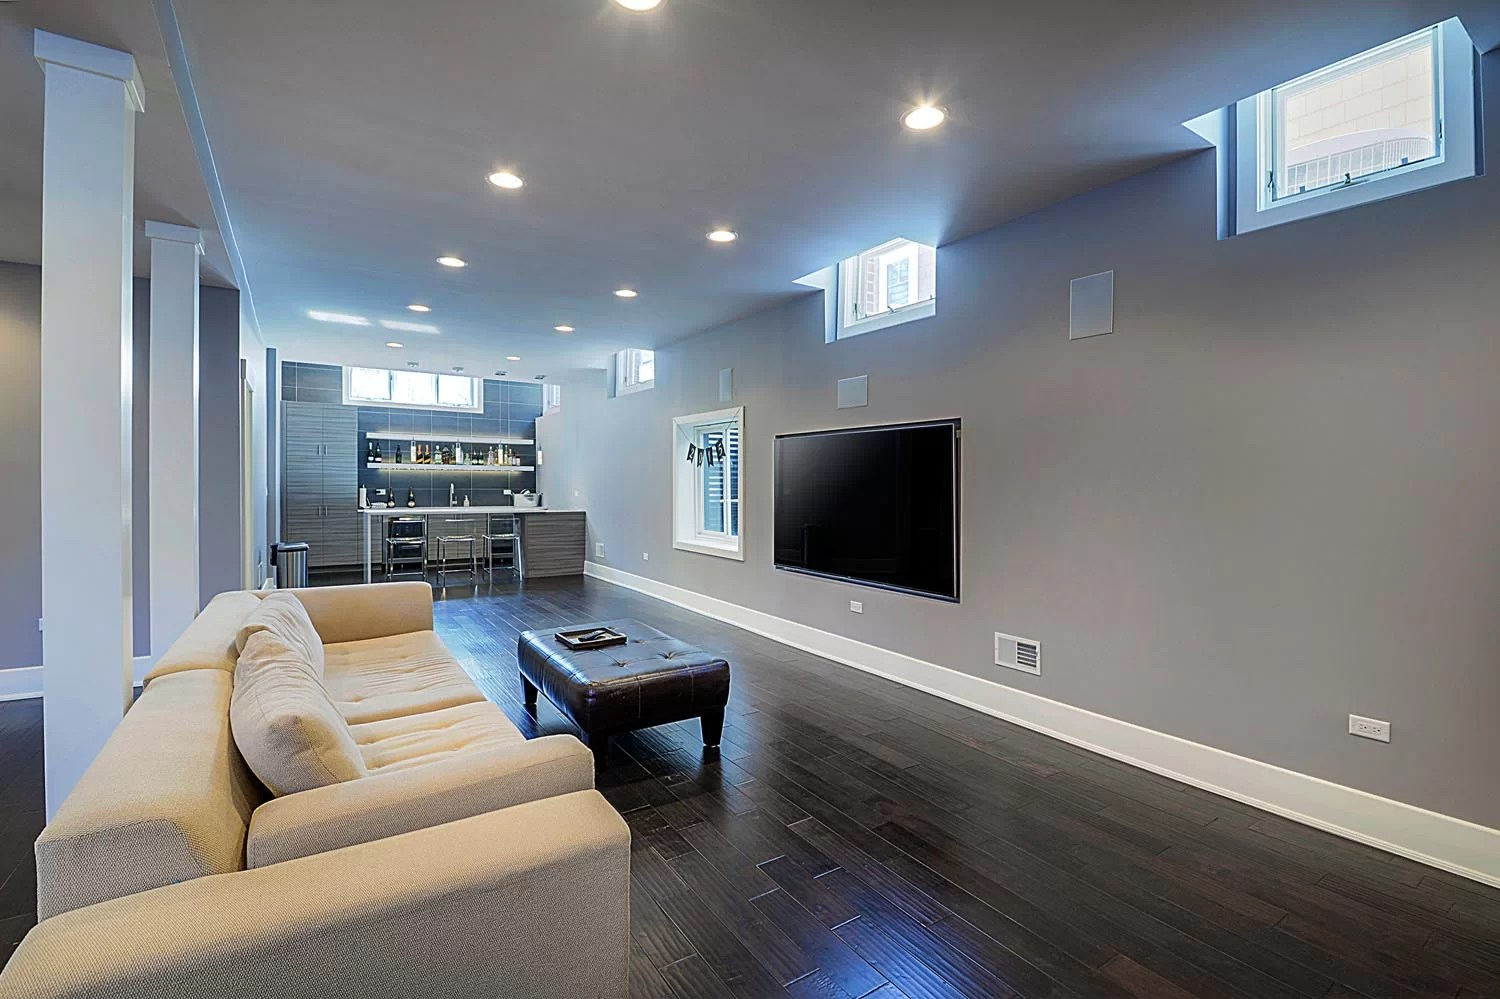 Sidd  Nishas Basement Remodel Pictures  Home Remodeling